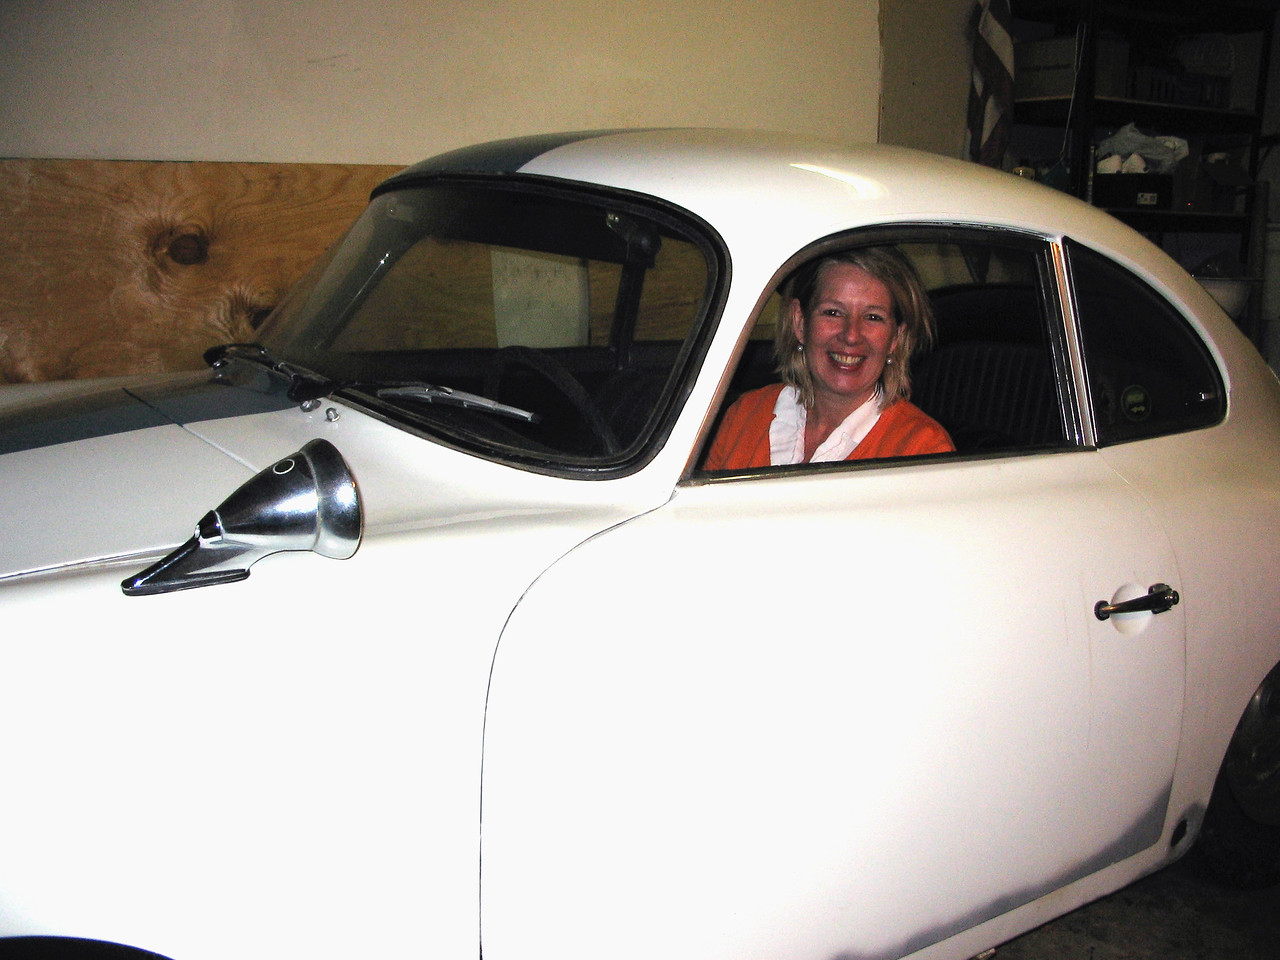 Here's Chantal 32 years later - posing in the same car during a visit to the USA from her home in Amsterdam.